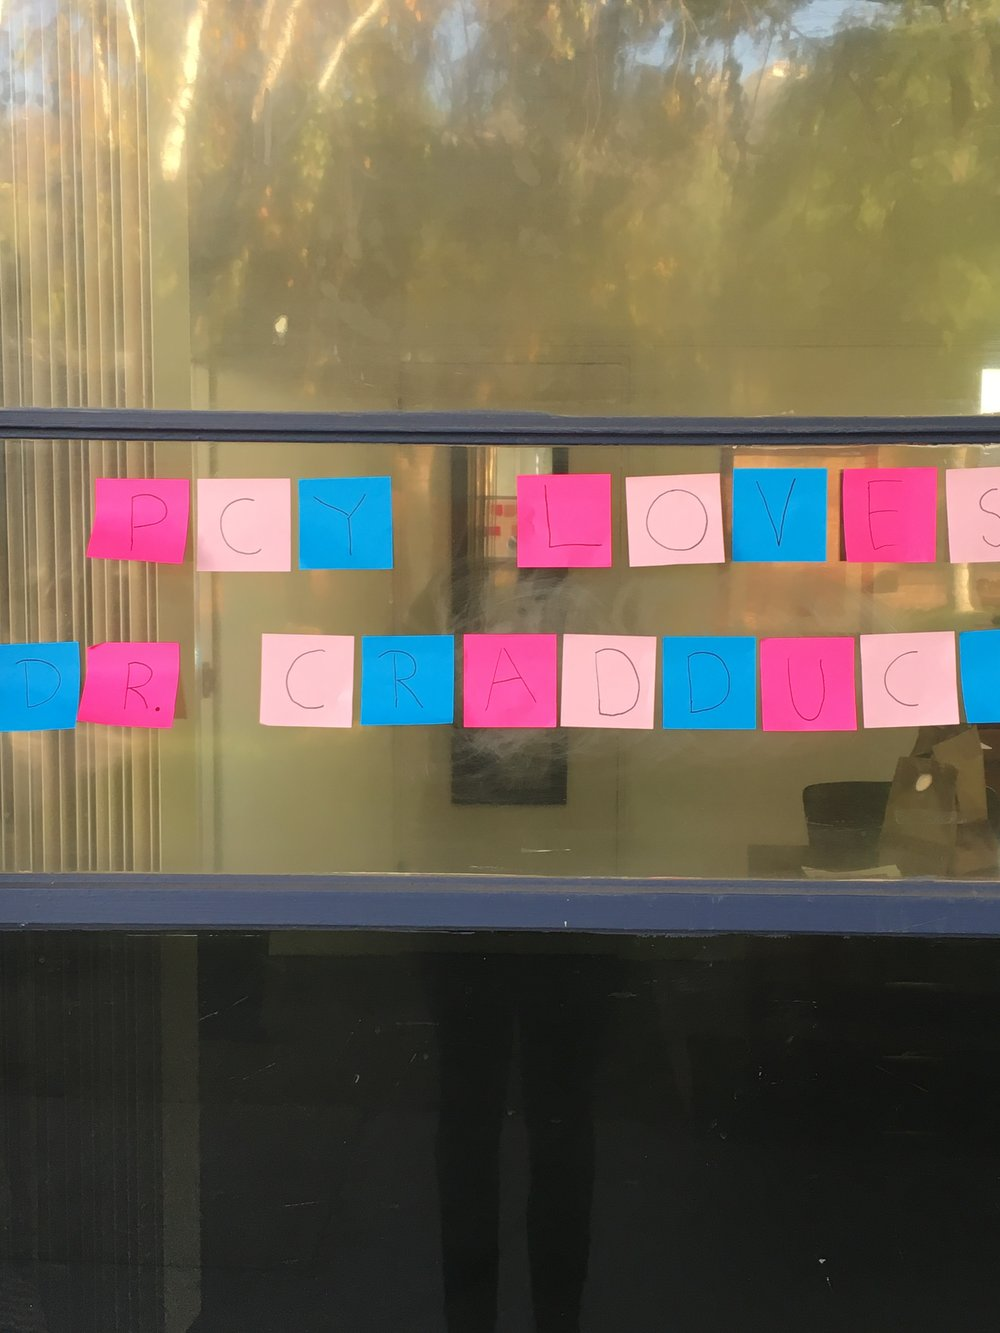 """Sticky notes on a window """"PCY loves Dr.Cradduck."""""""